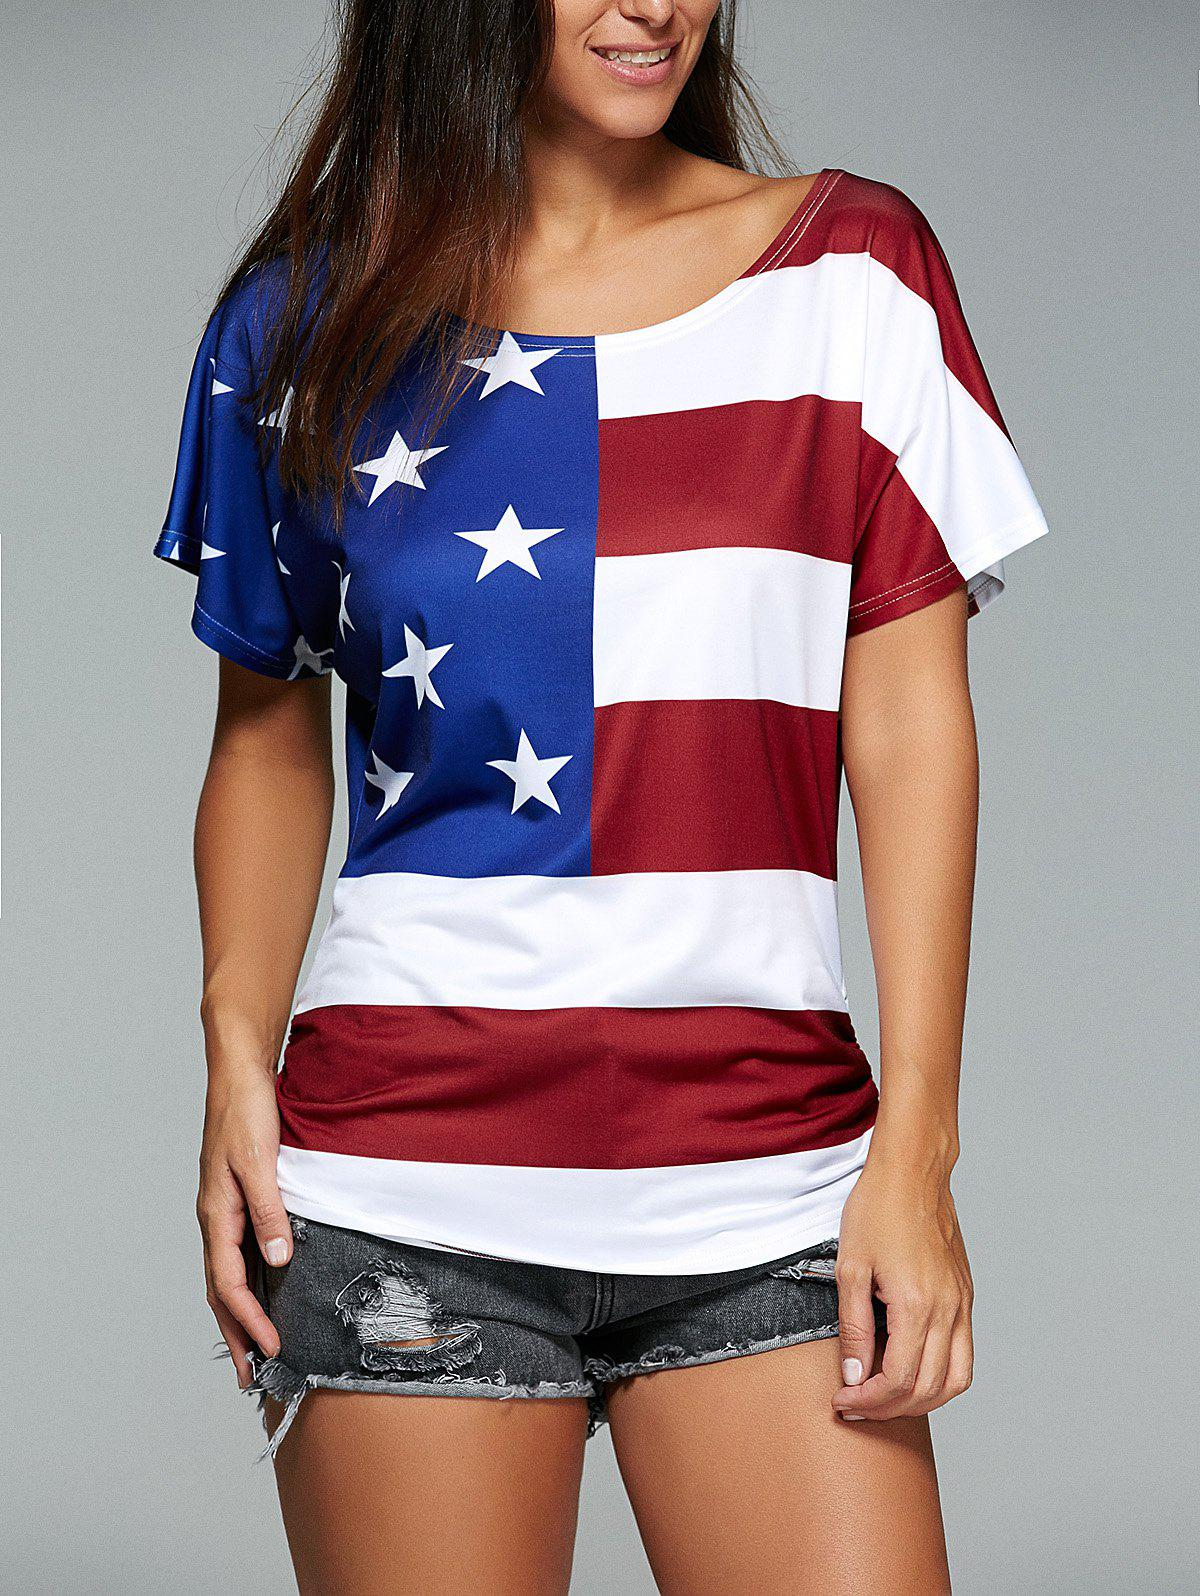 Short Sleeve American Flag Print T-Shirt - DEEP RED XL